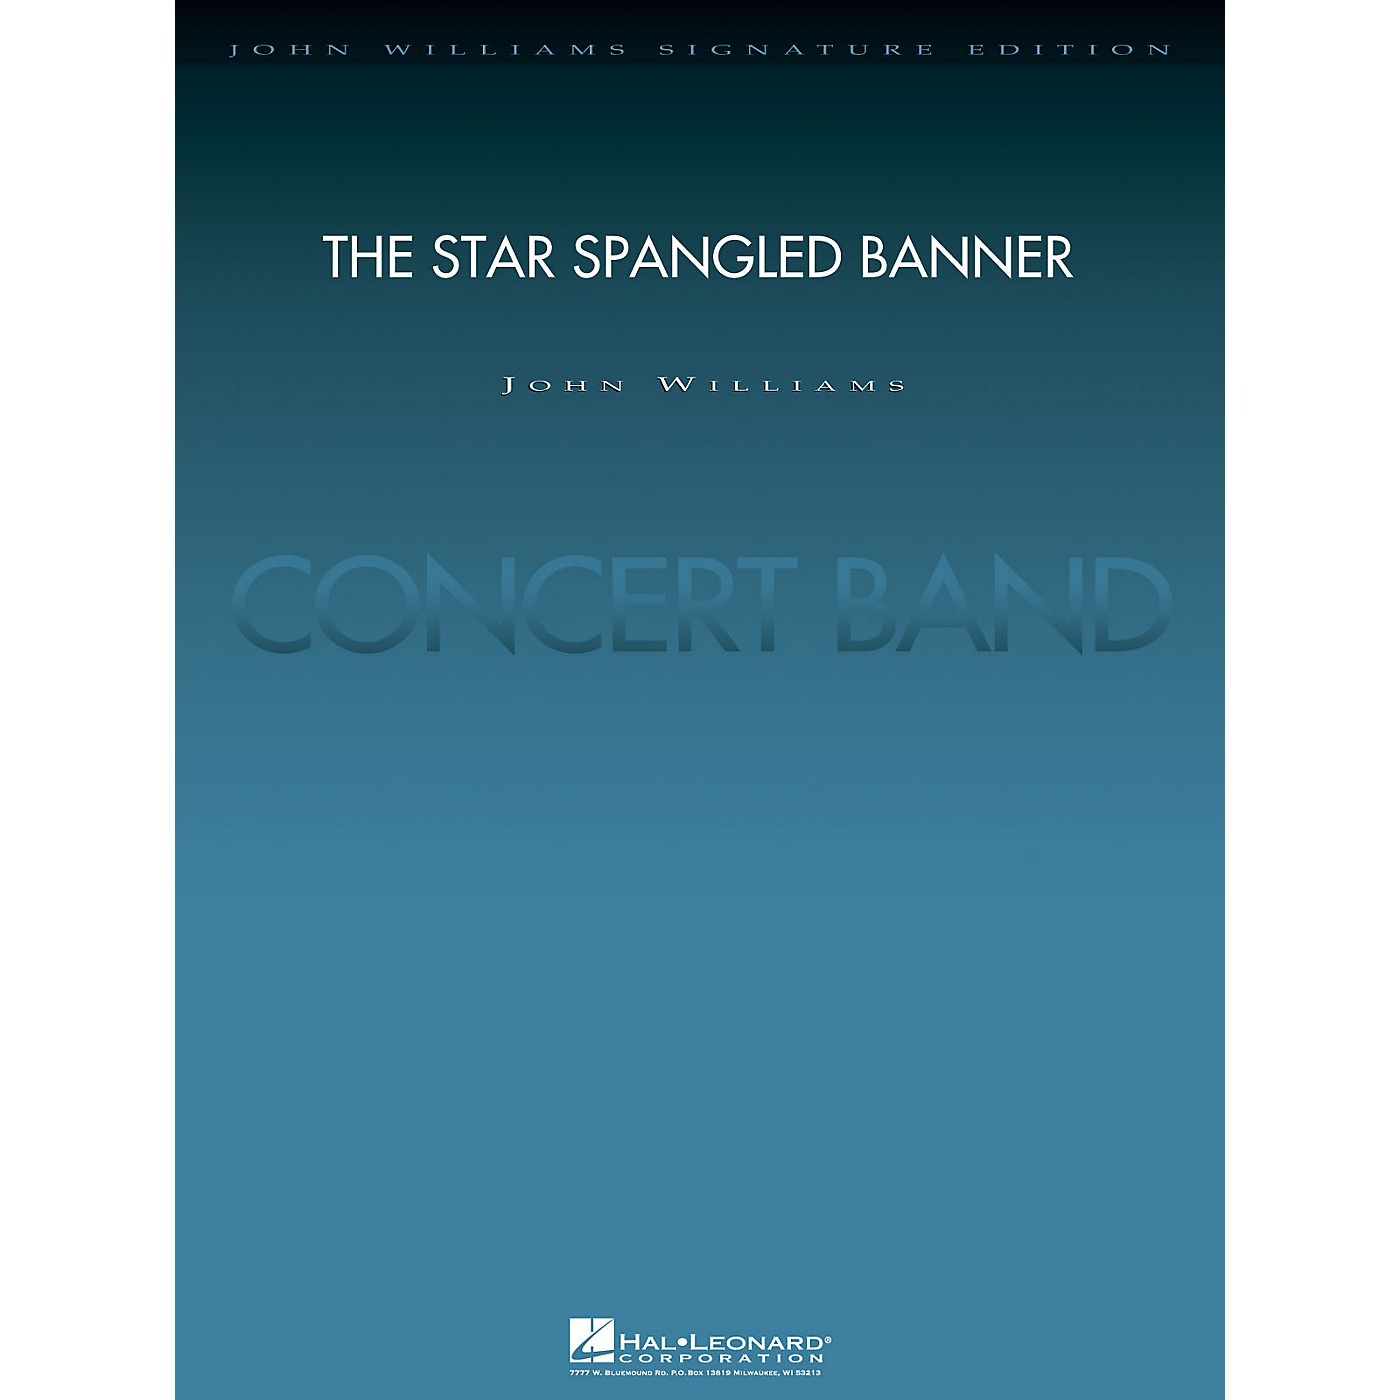 Hal Leonard The Star Spangled Banner (2004 Rose Bowl Edition Deluxe Score) Concert Band Level 5 by John Williams thumbnail